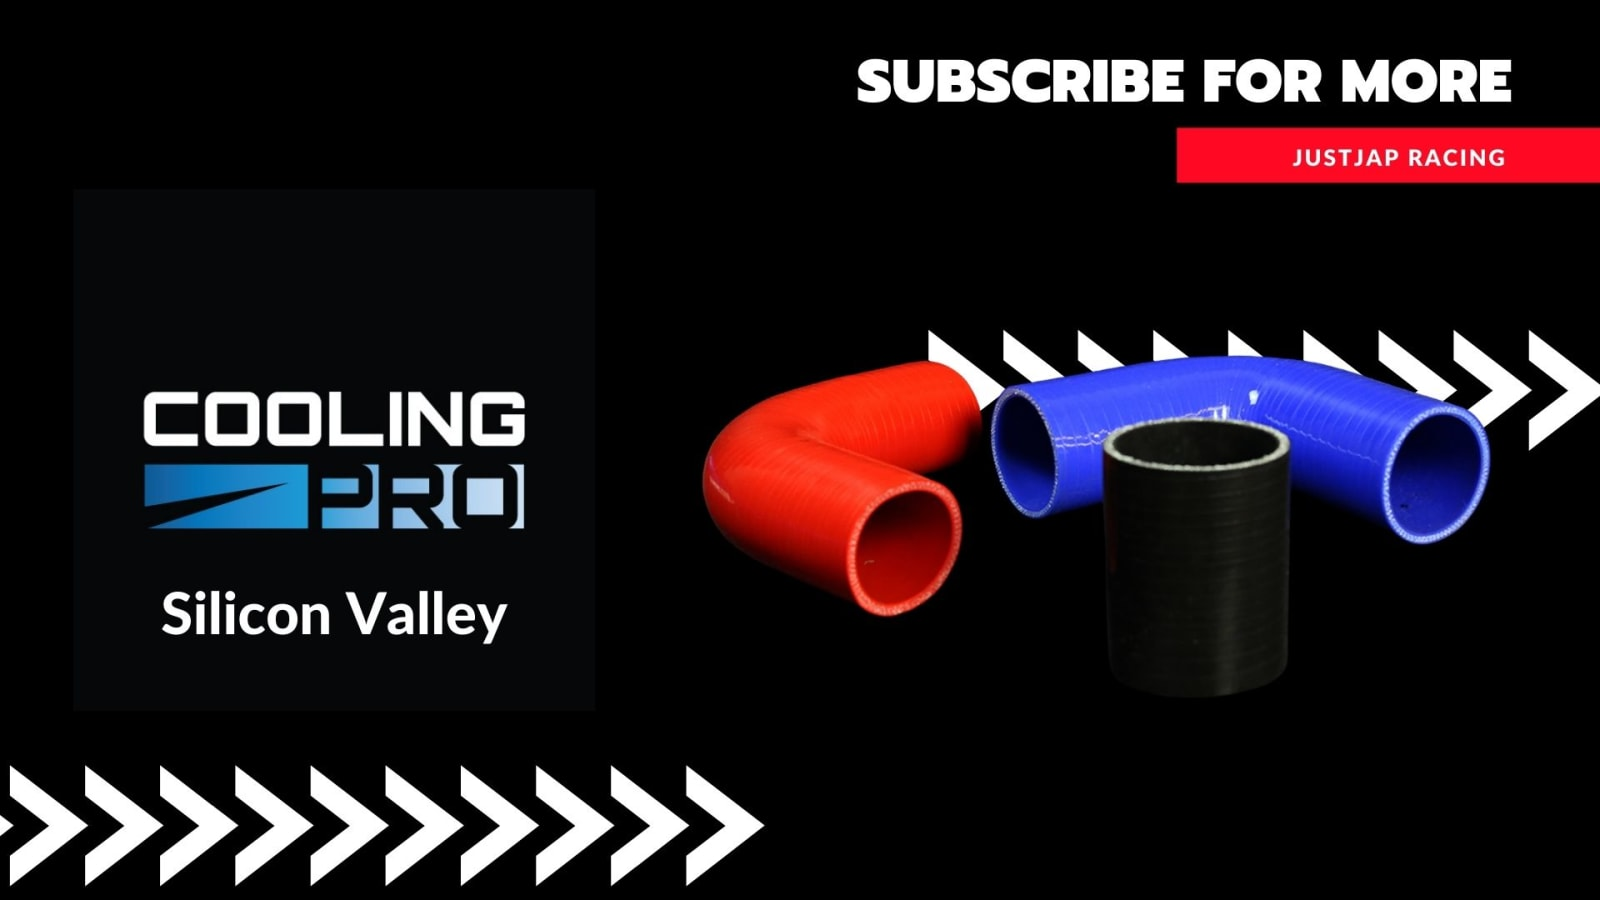 Cooling Pro Silicone 2 Inch / 51mm - 2.25 Inch / 57mm Straight Reducer Hose